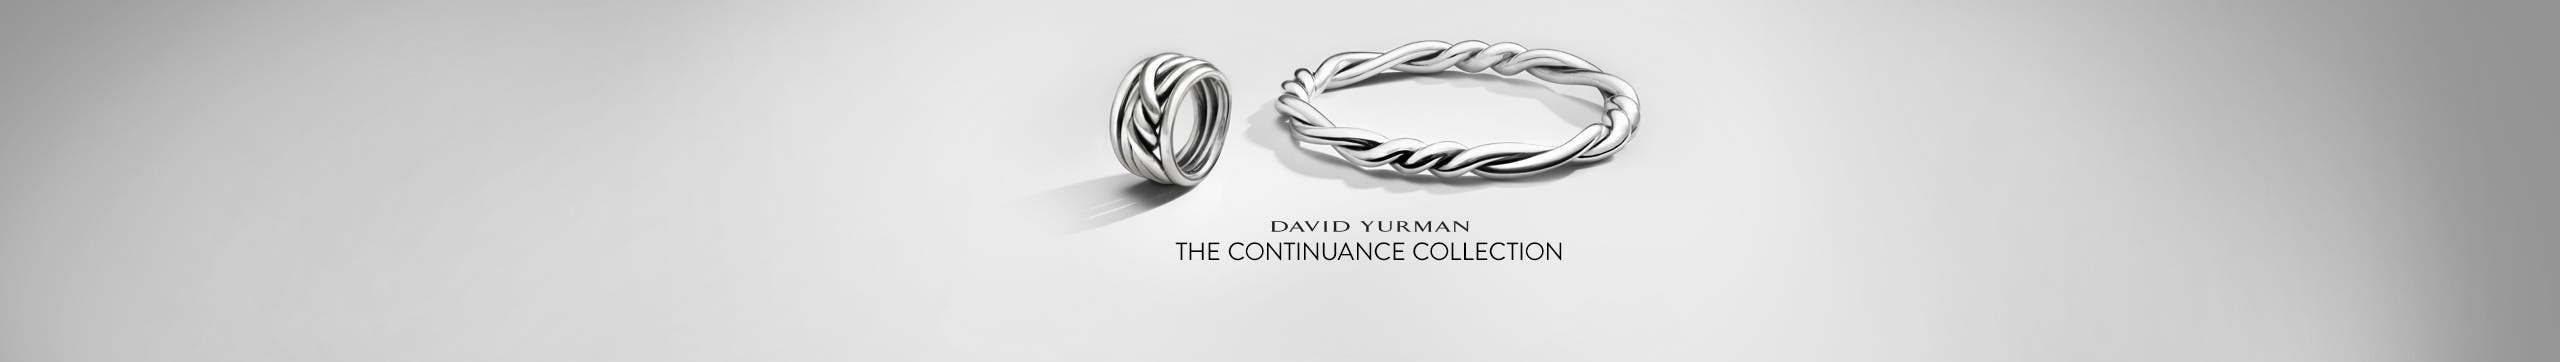 David Yurman: the Continuance Collection.